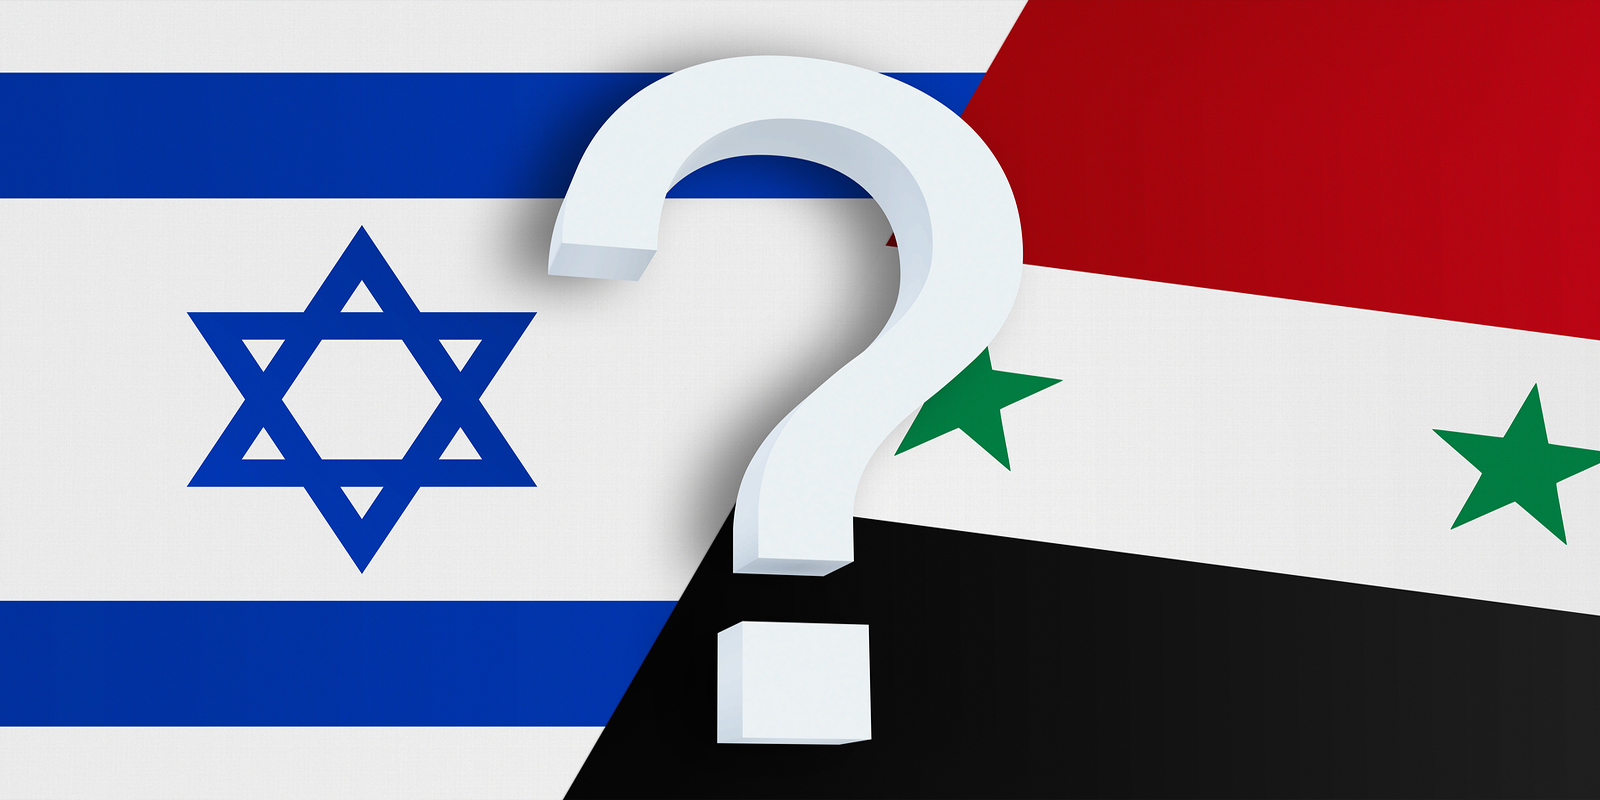 Relationship between the Israel and the Syria. Two flags of countries on background. 3D rendered illustration.